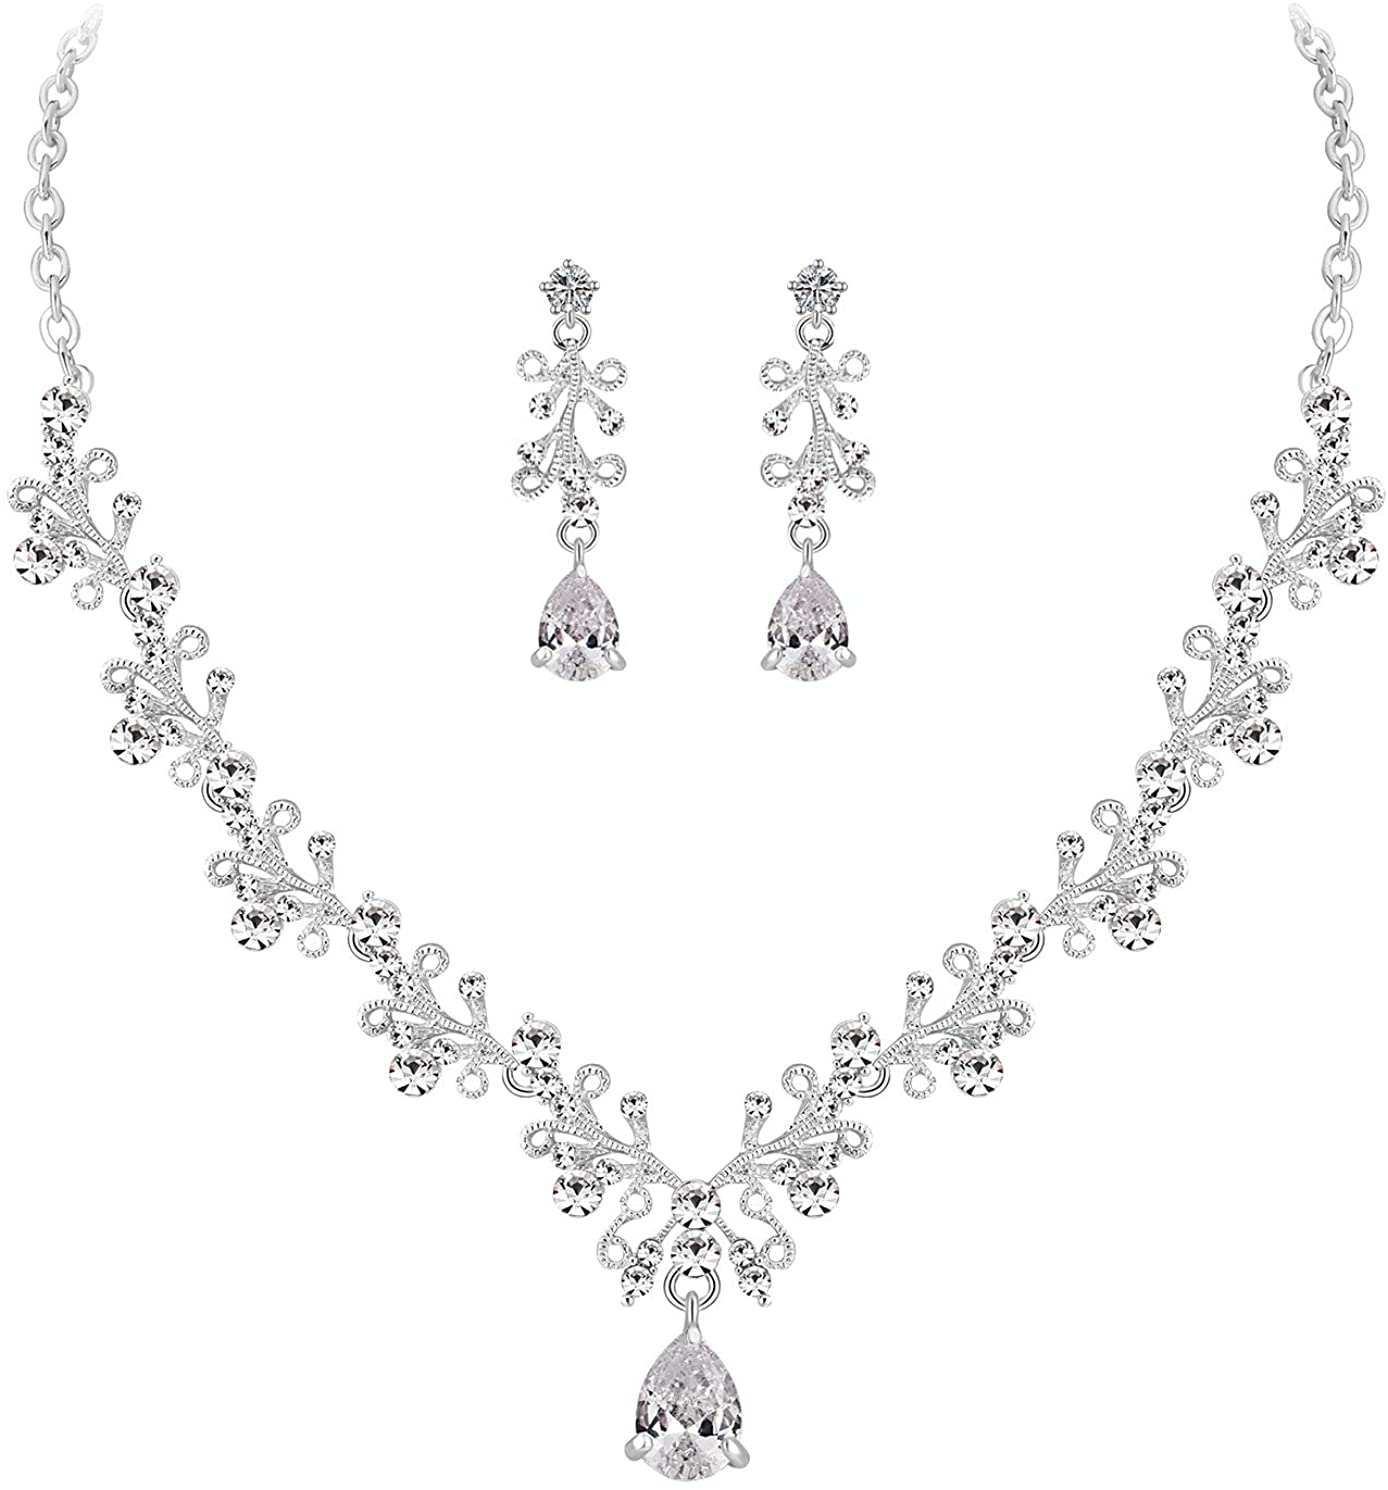 MOOCHI Wedding Silver Plated Clear Cubic Zircon Pendant Crystal Necklace Earrings Jewelry Set for Bridal Brides Women Girls Bridesmaids Statement Costumes Accessories Dress Gift